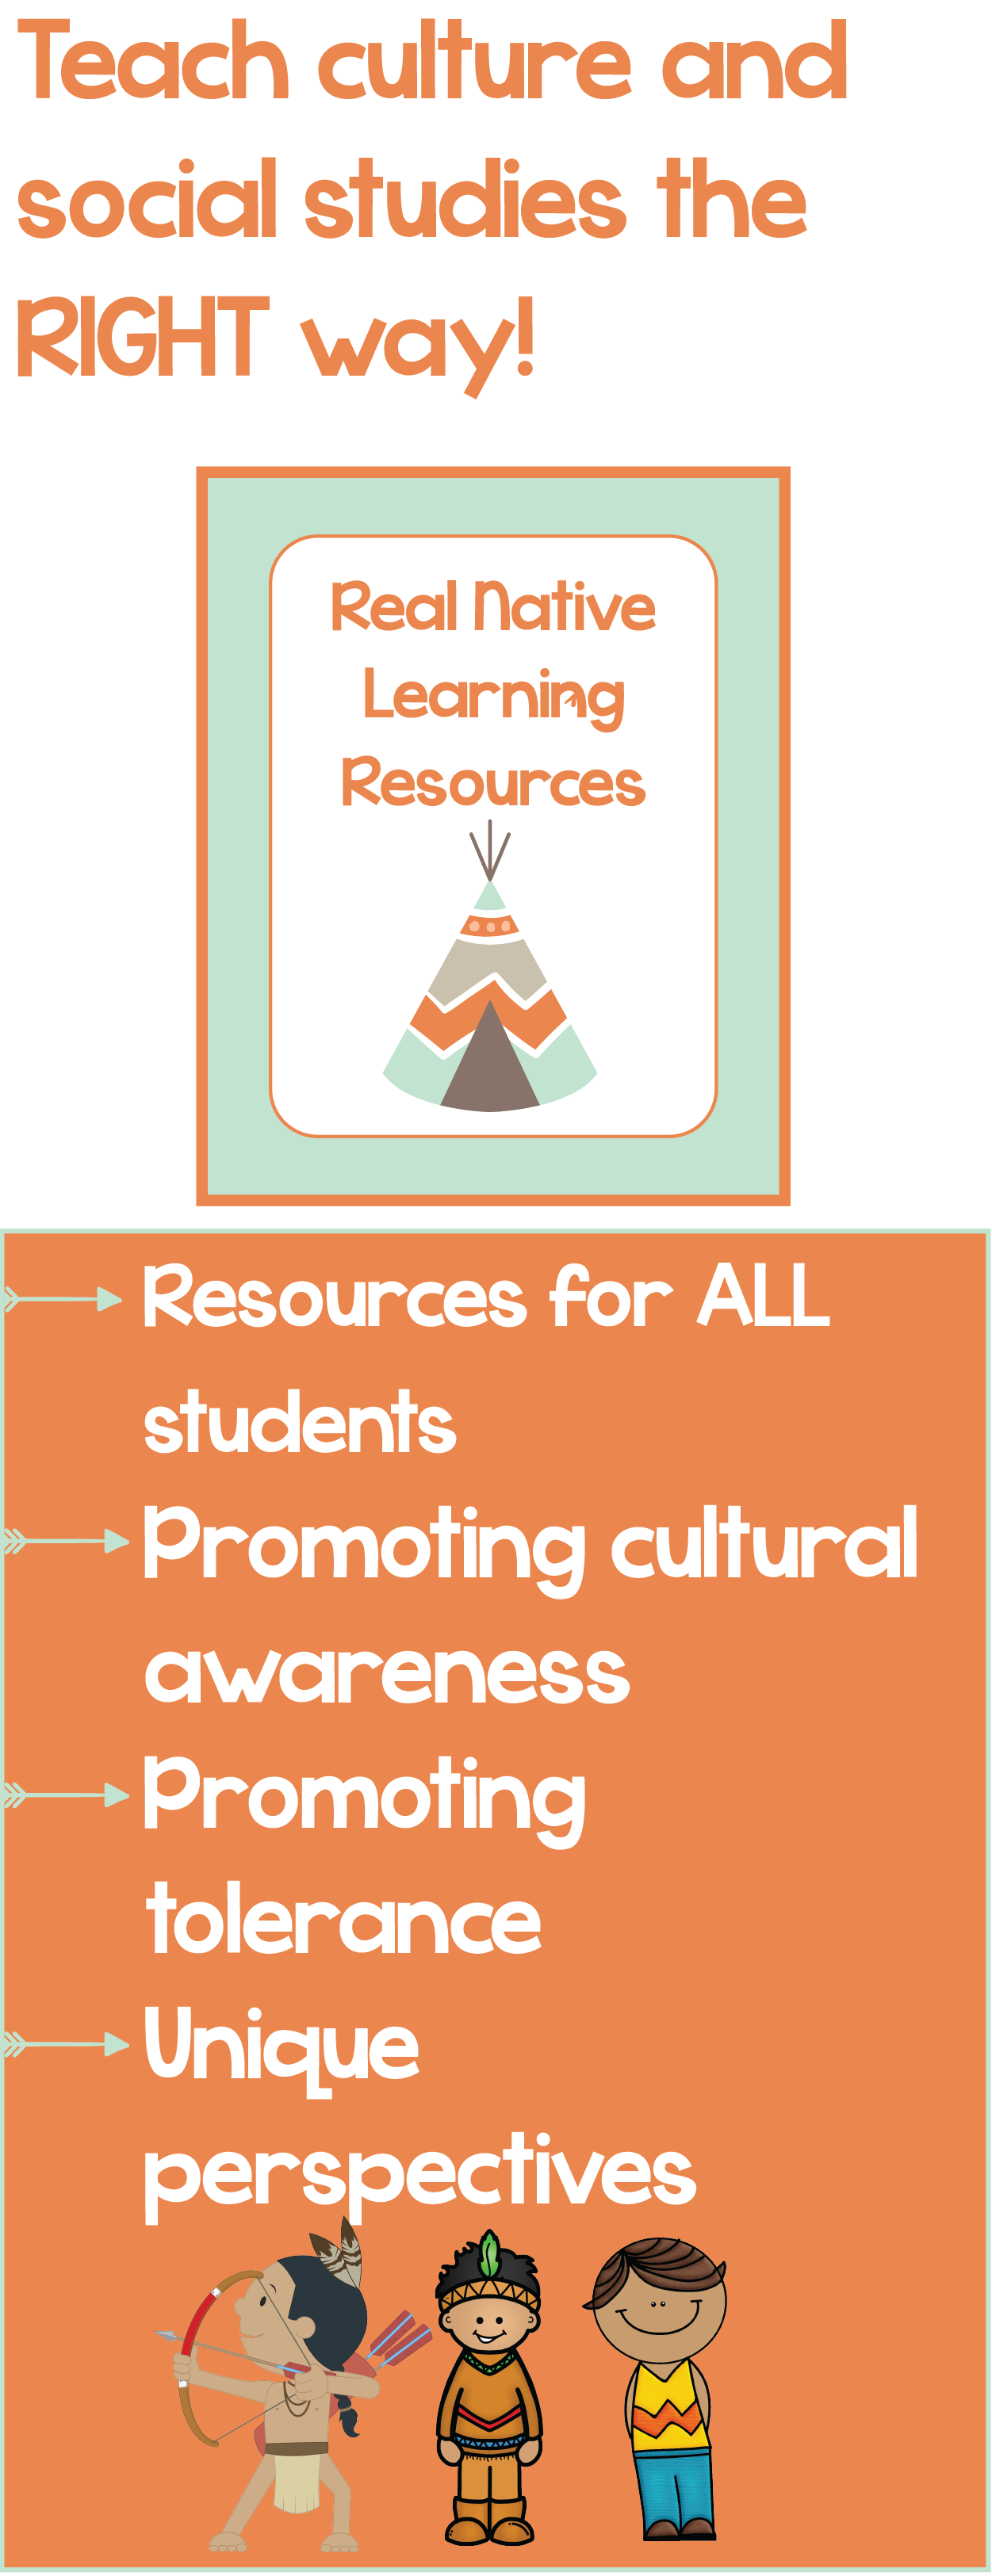 Cultural Activities For All Students Created By Native